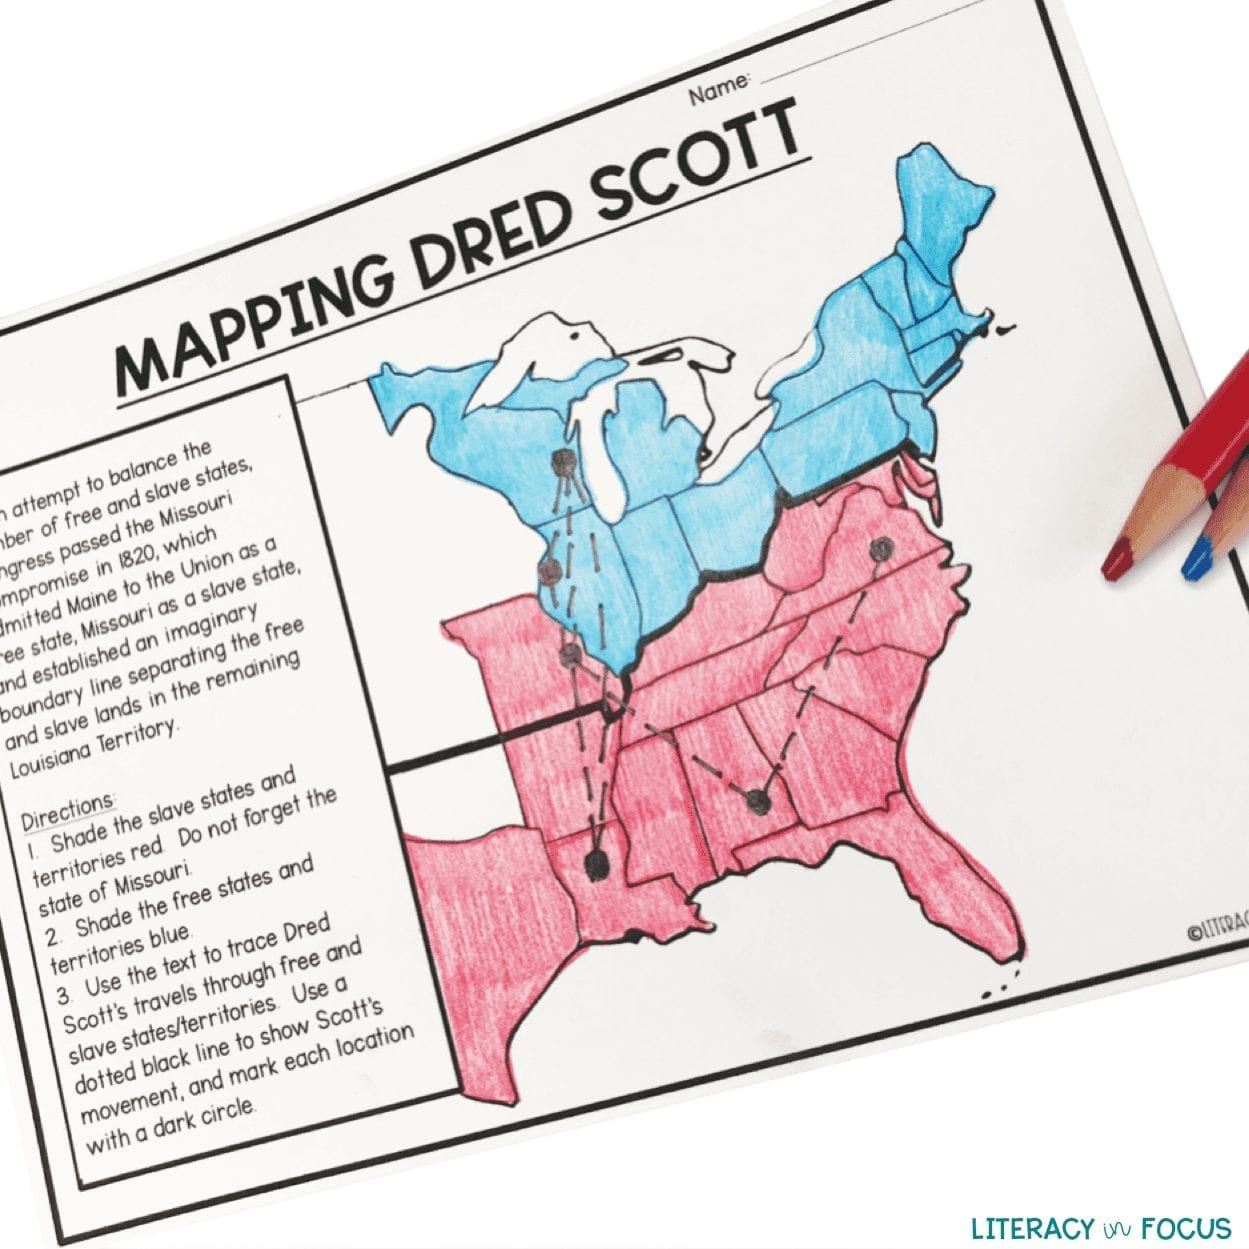 dred scott map